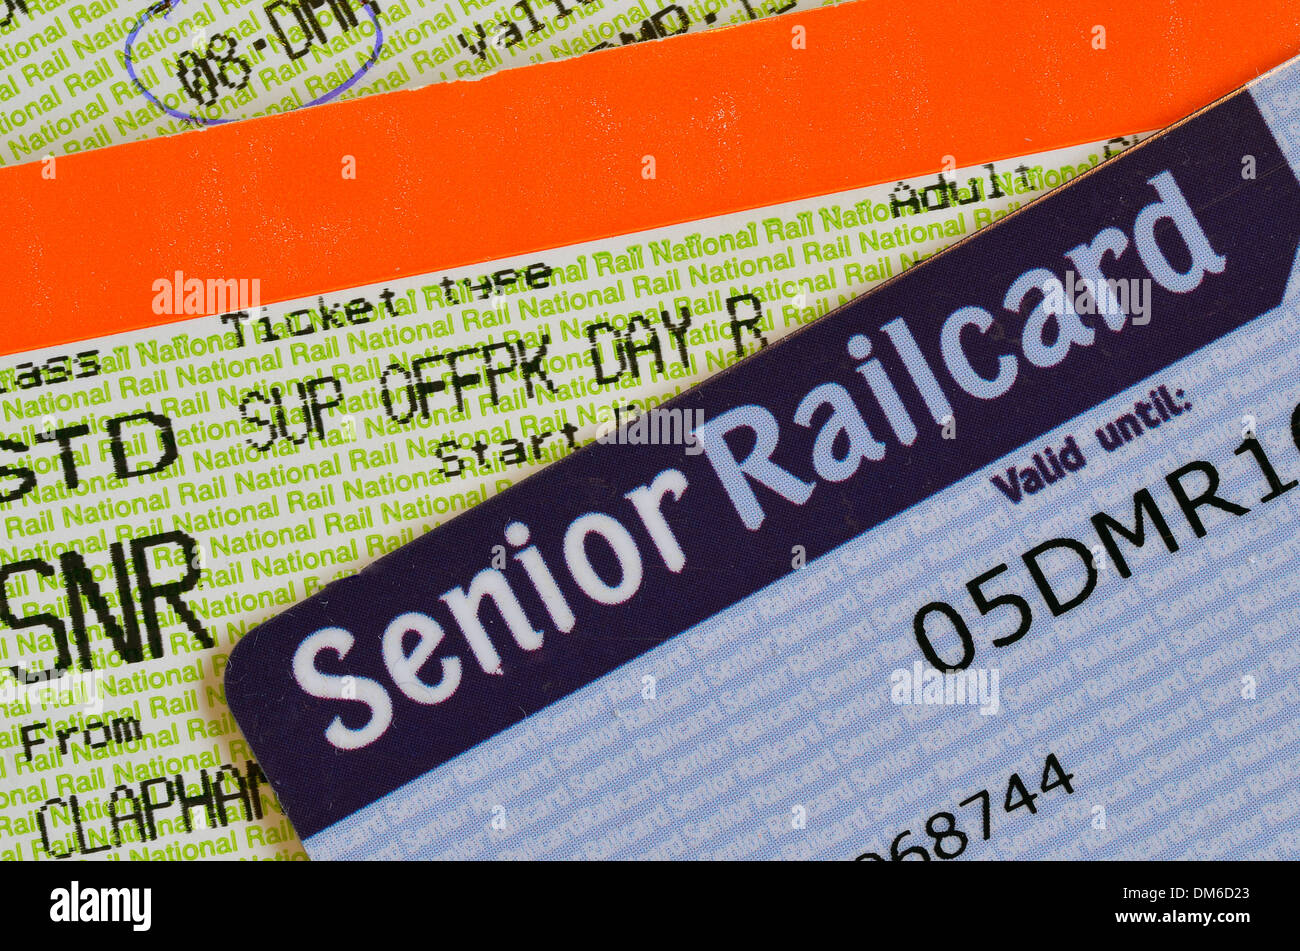 UK Senior Railcard with ticket printed with SNR to indicate that the holder must have a Senior Railcard to validate them. - Stock Image